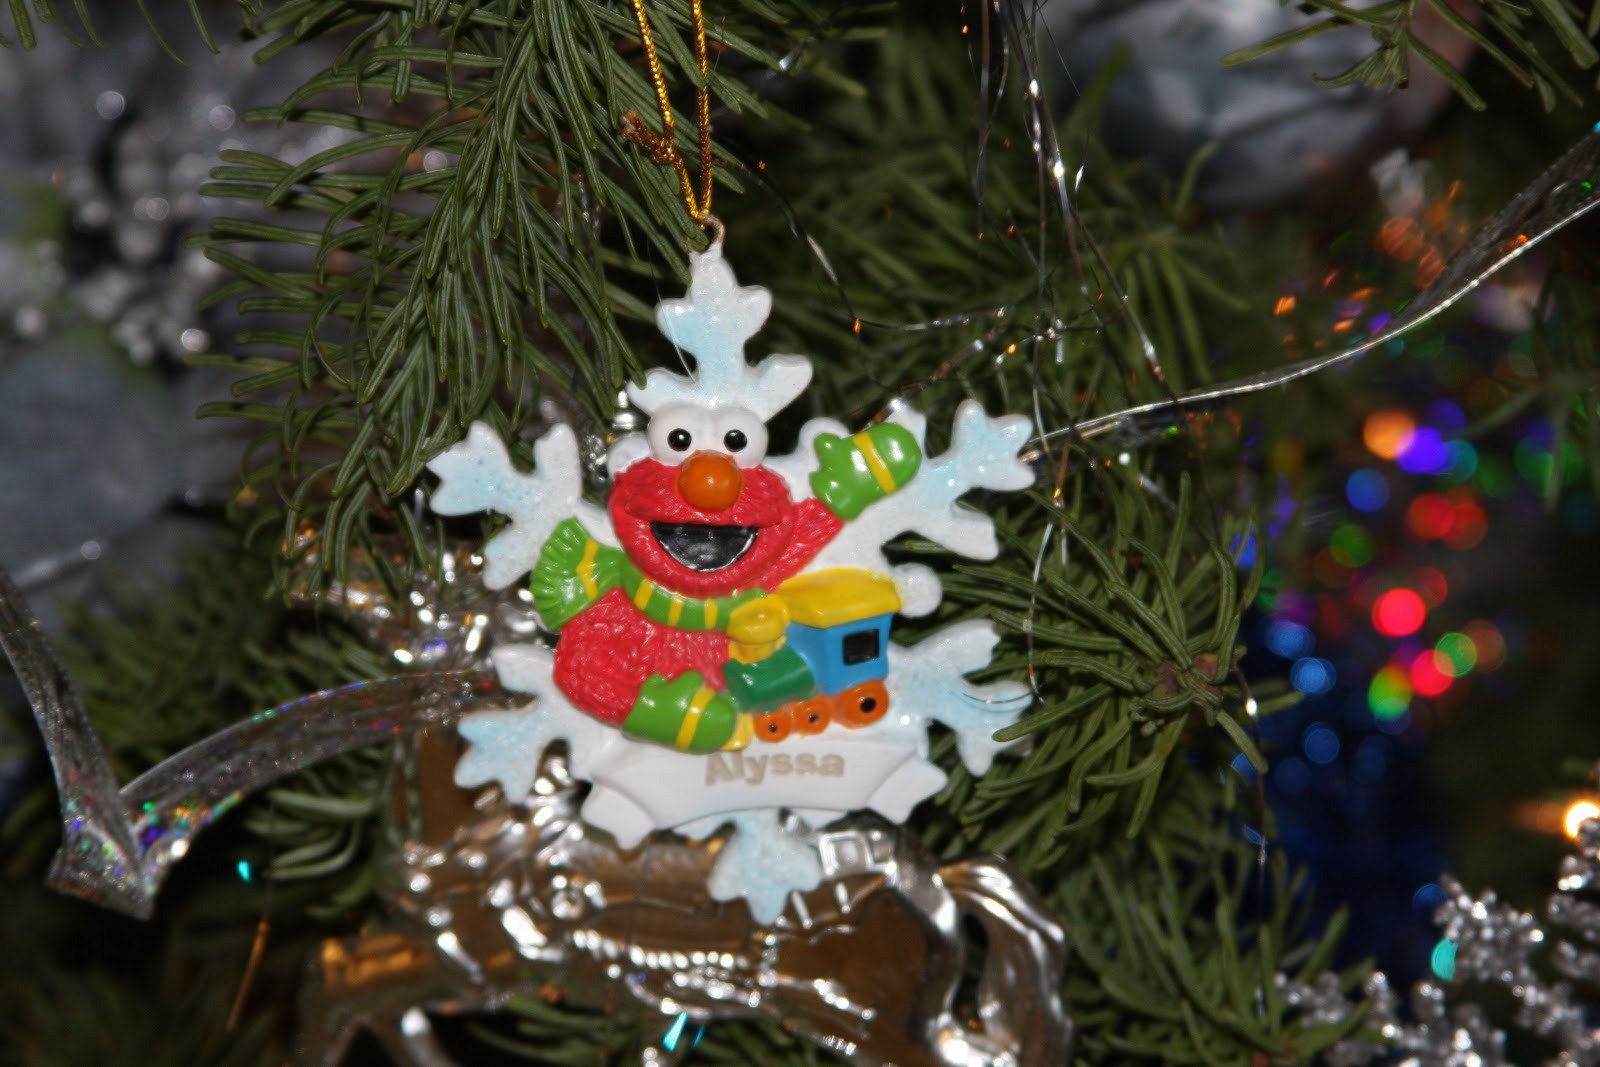 Career christmas ornaments - These Are The Christmas Ornaments I Bought In 2009 For My Husband And Daughter My Husband Received The Firefighting Ornament Because Of His Career